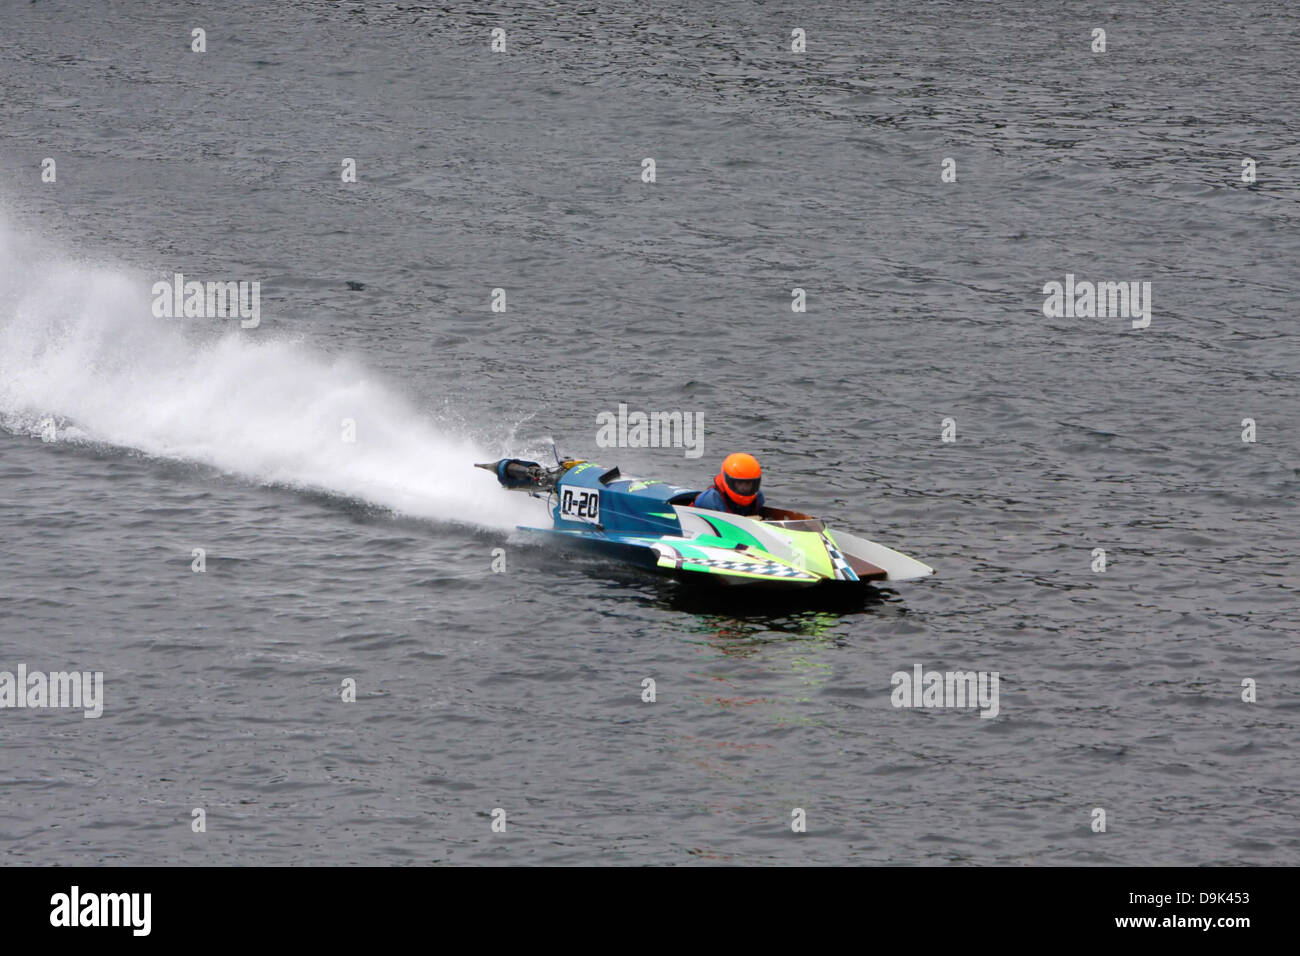 outboard boat races on water river - Stock Image